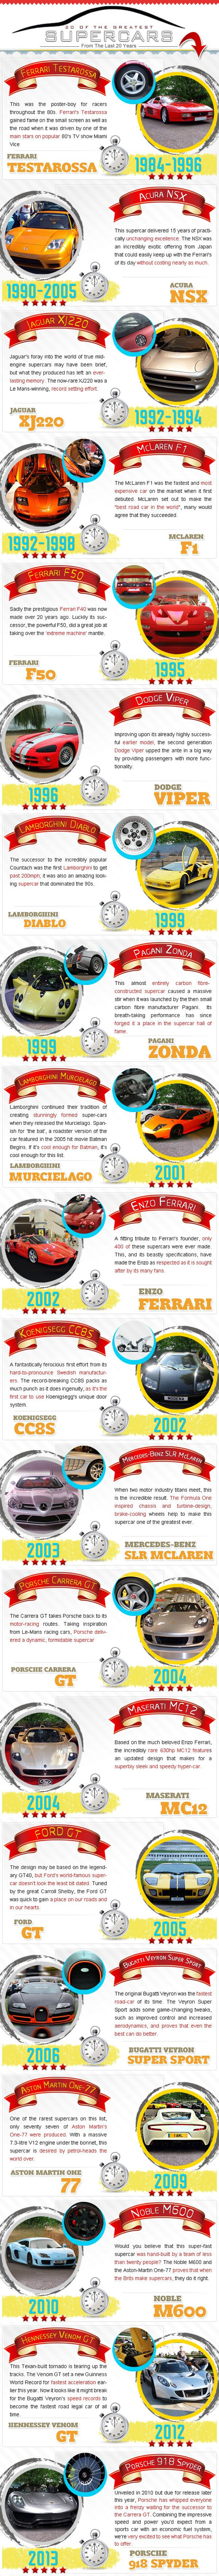 Top 20 Supercars of the last 20 years